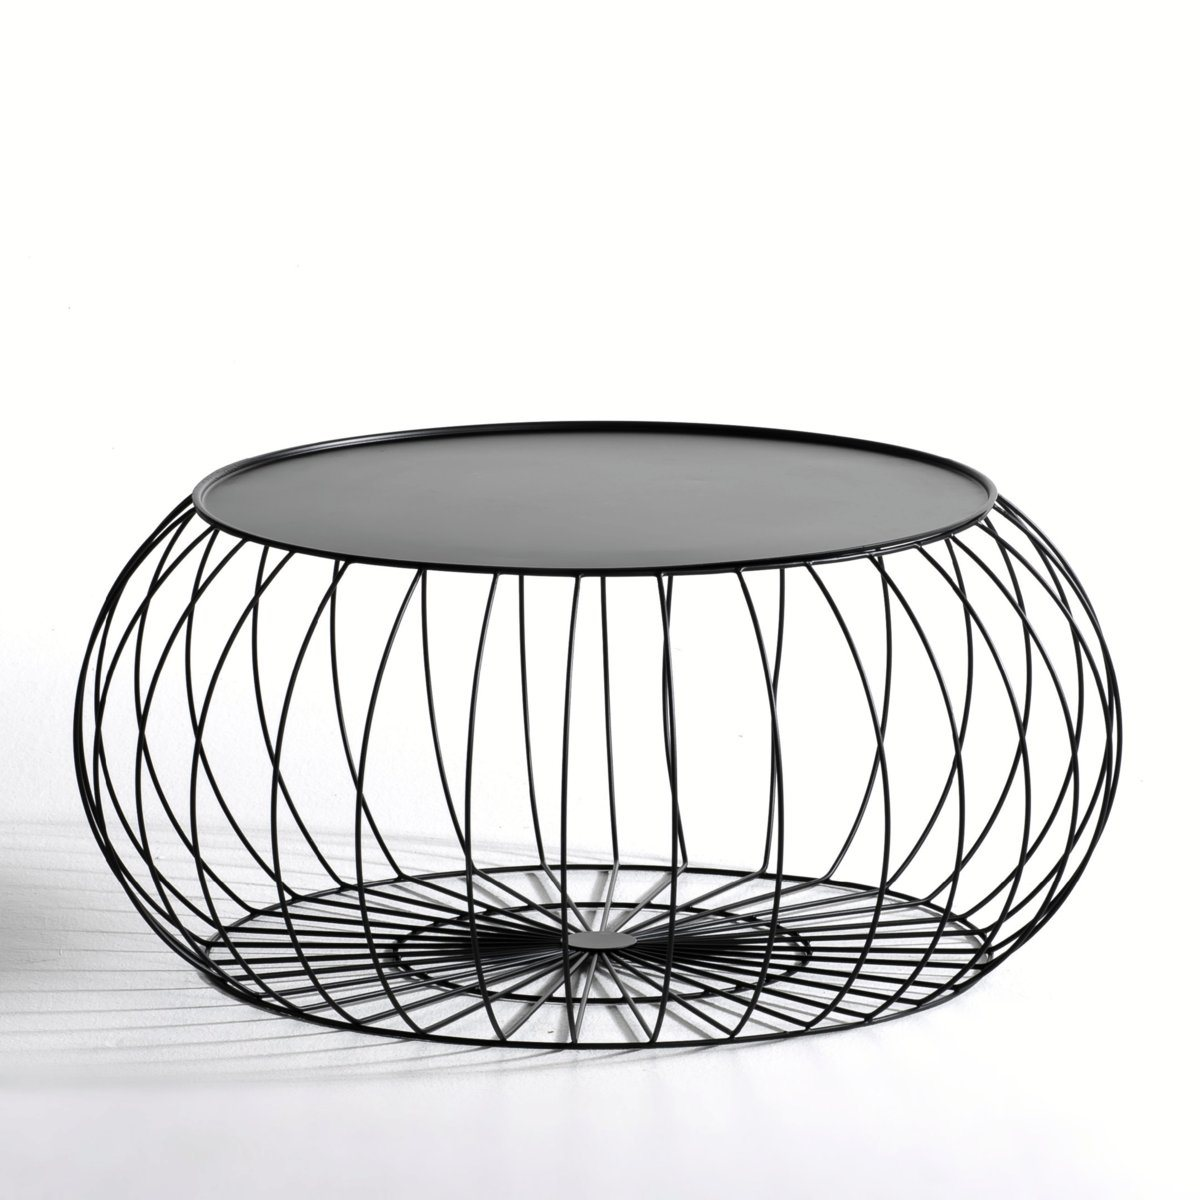 table basse am pm table basse cage fil m tal am pm prix. Black Bedroom Furniture Sets. Home Design Ideas